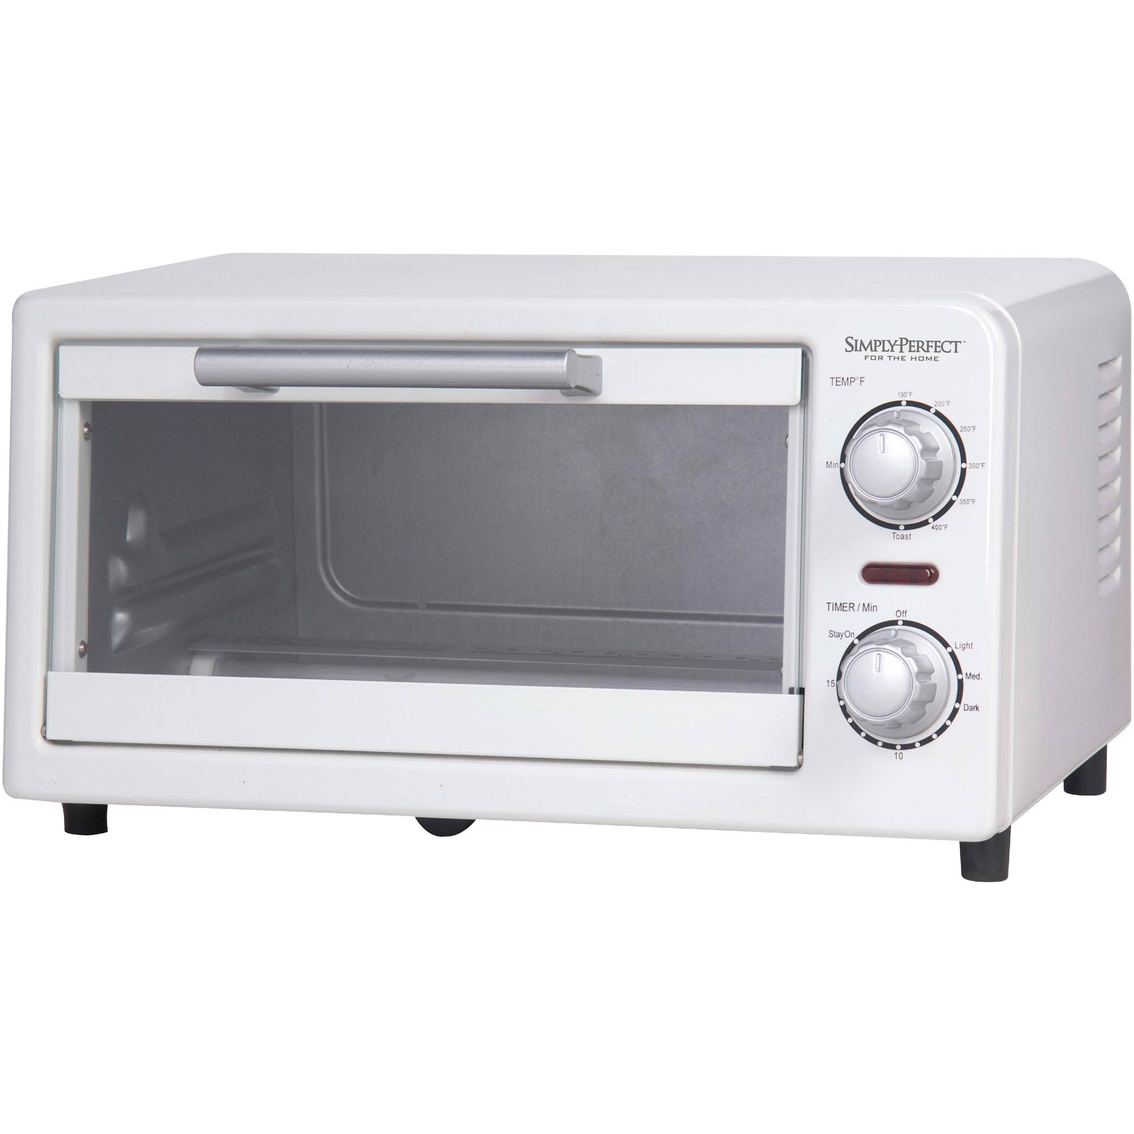 Simply Perfect Toaster Oven Toasters